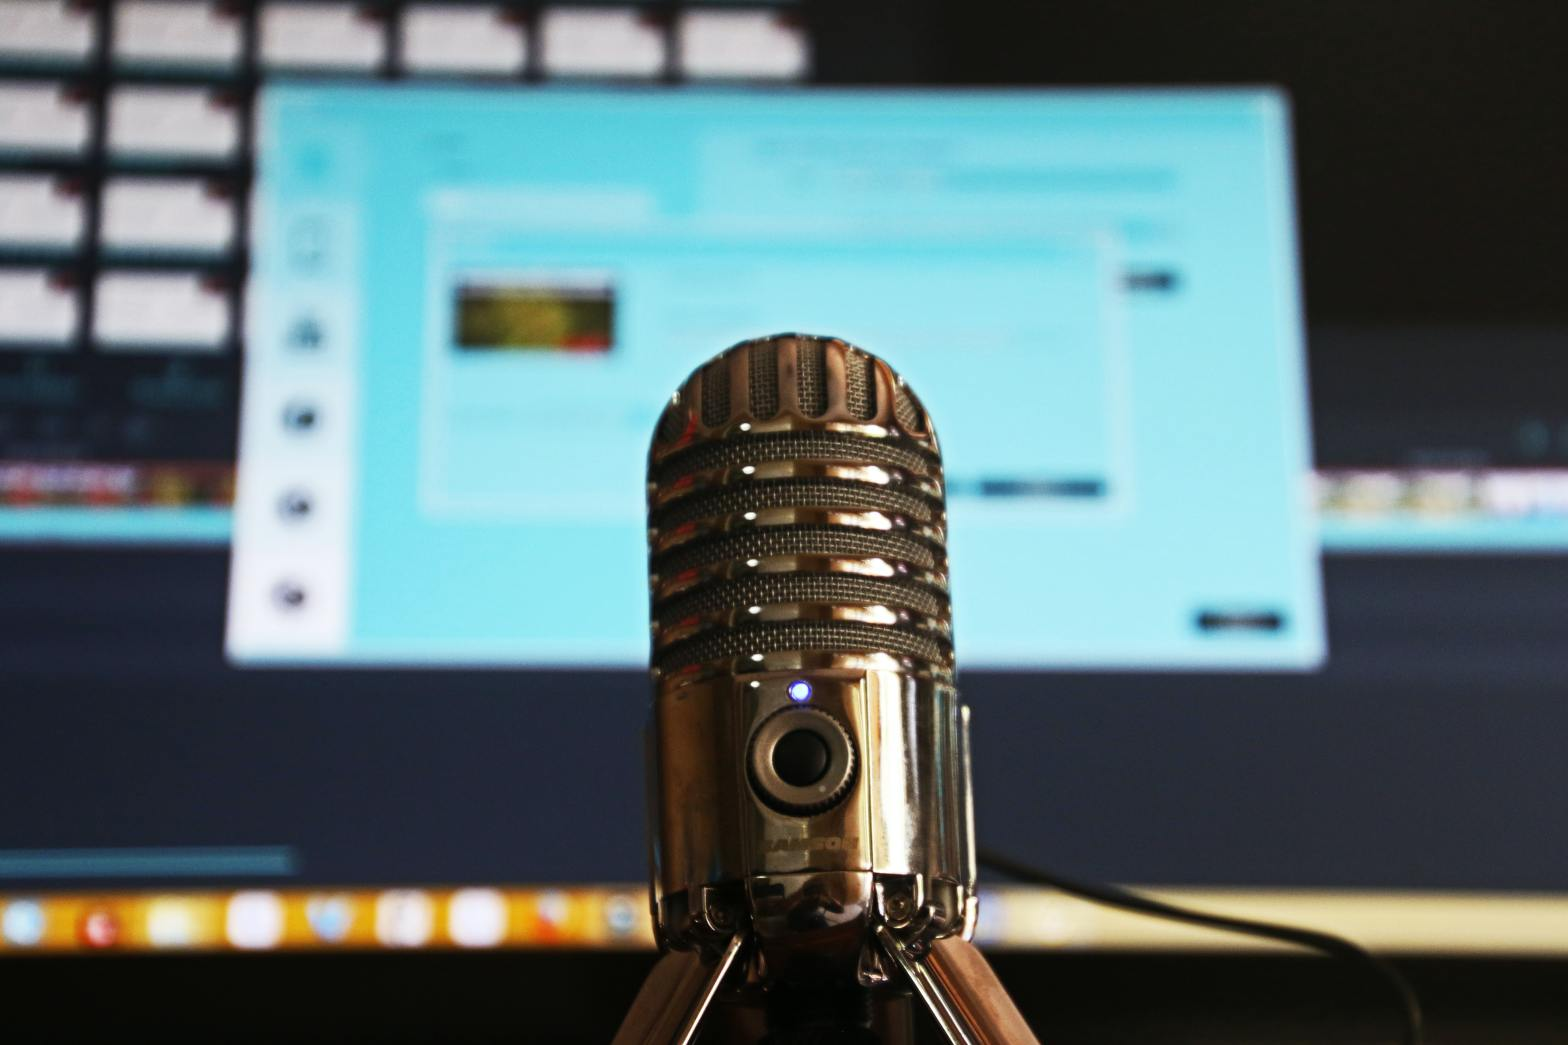 image of microphone in front of a computer monitor